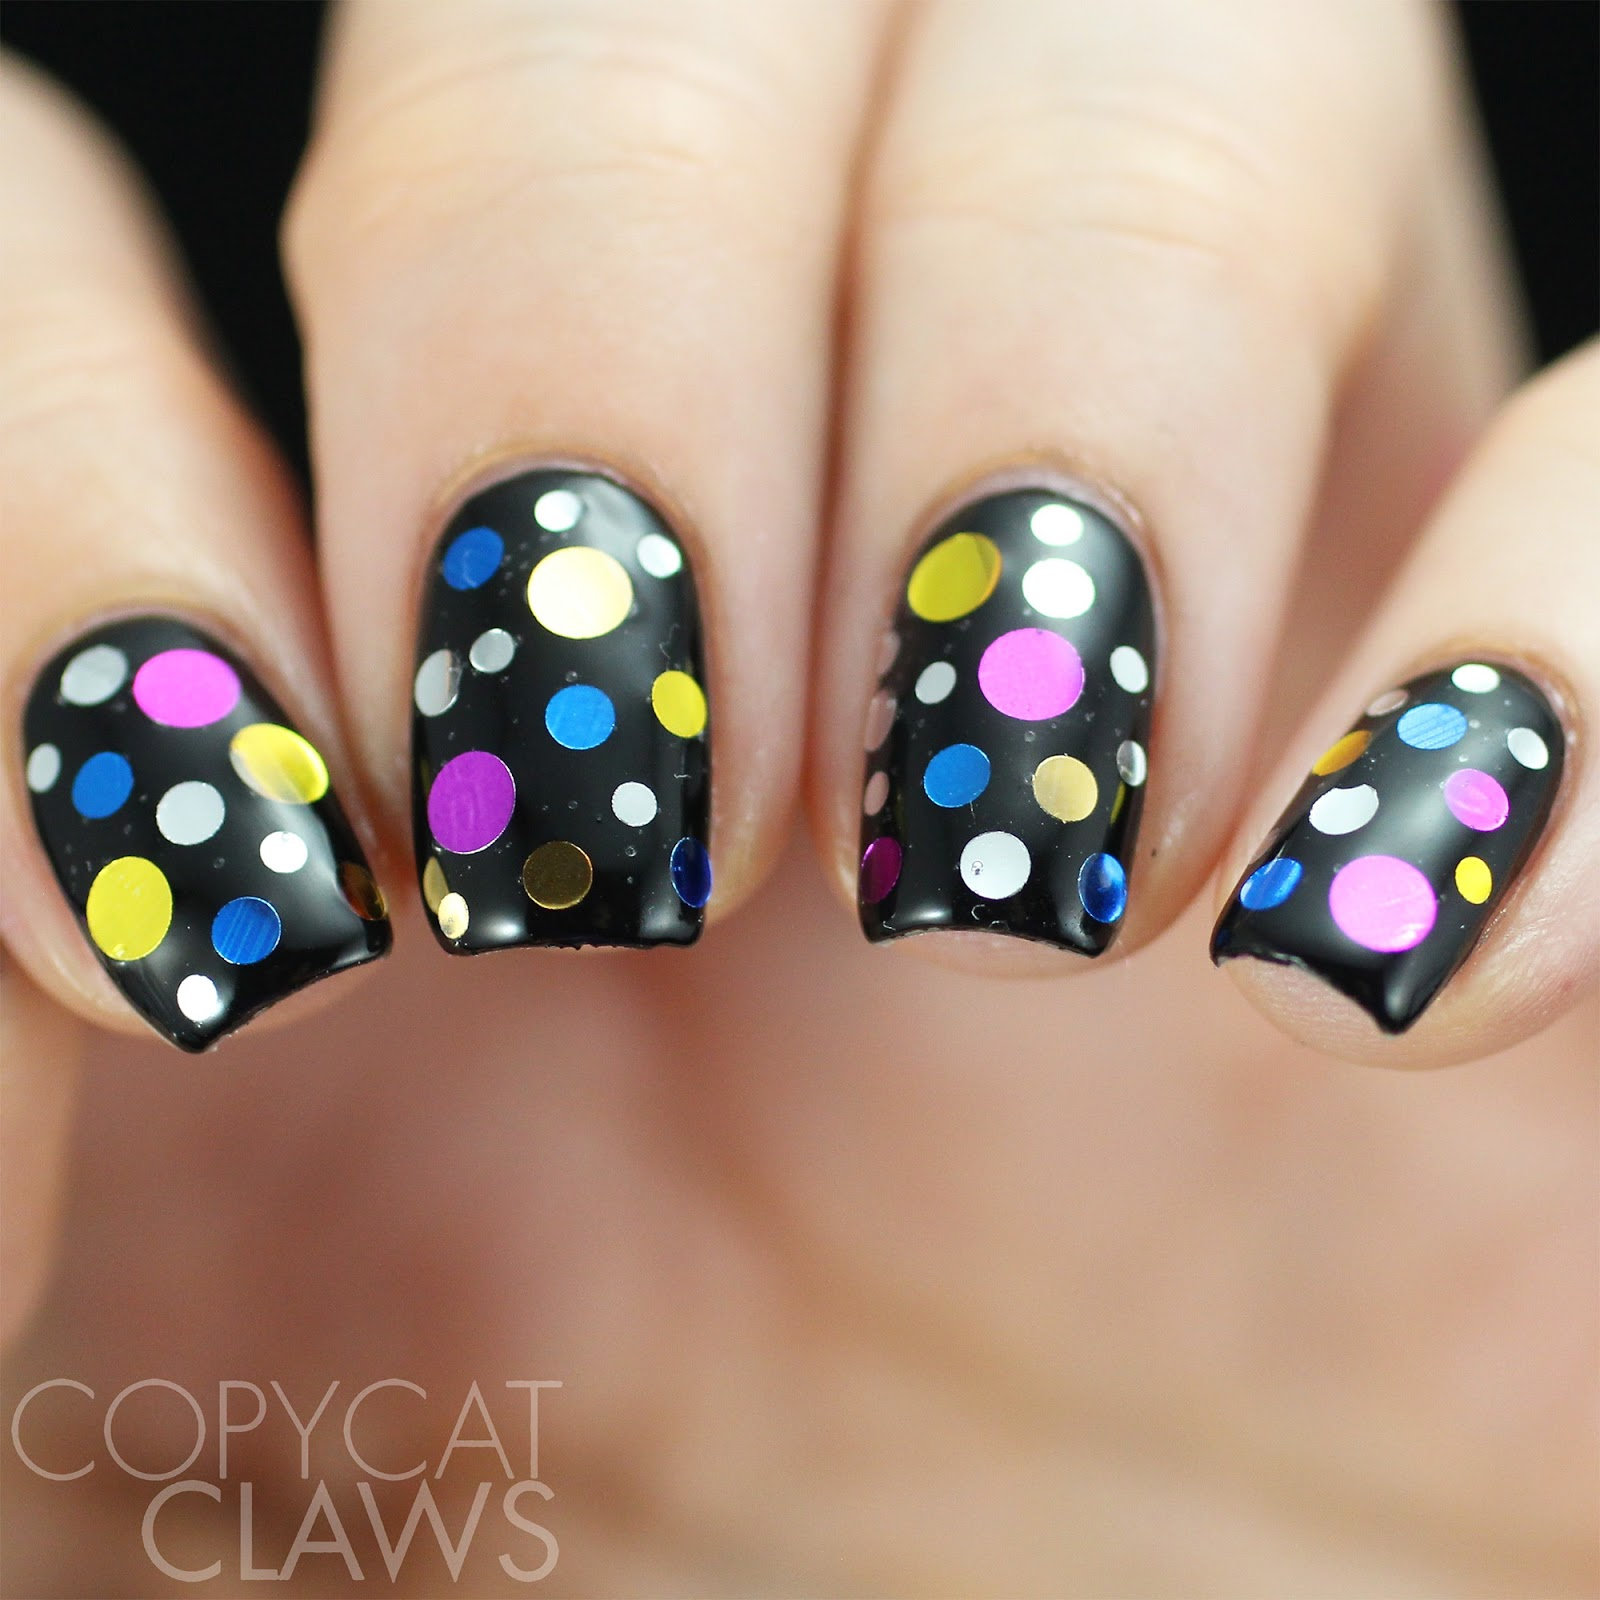 Copycat Claws: Whats Up Nails Disco Confetti